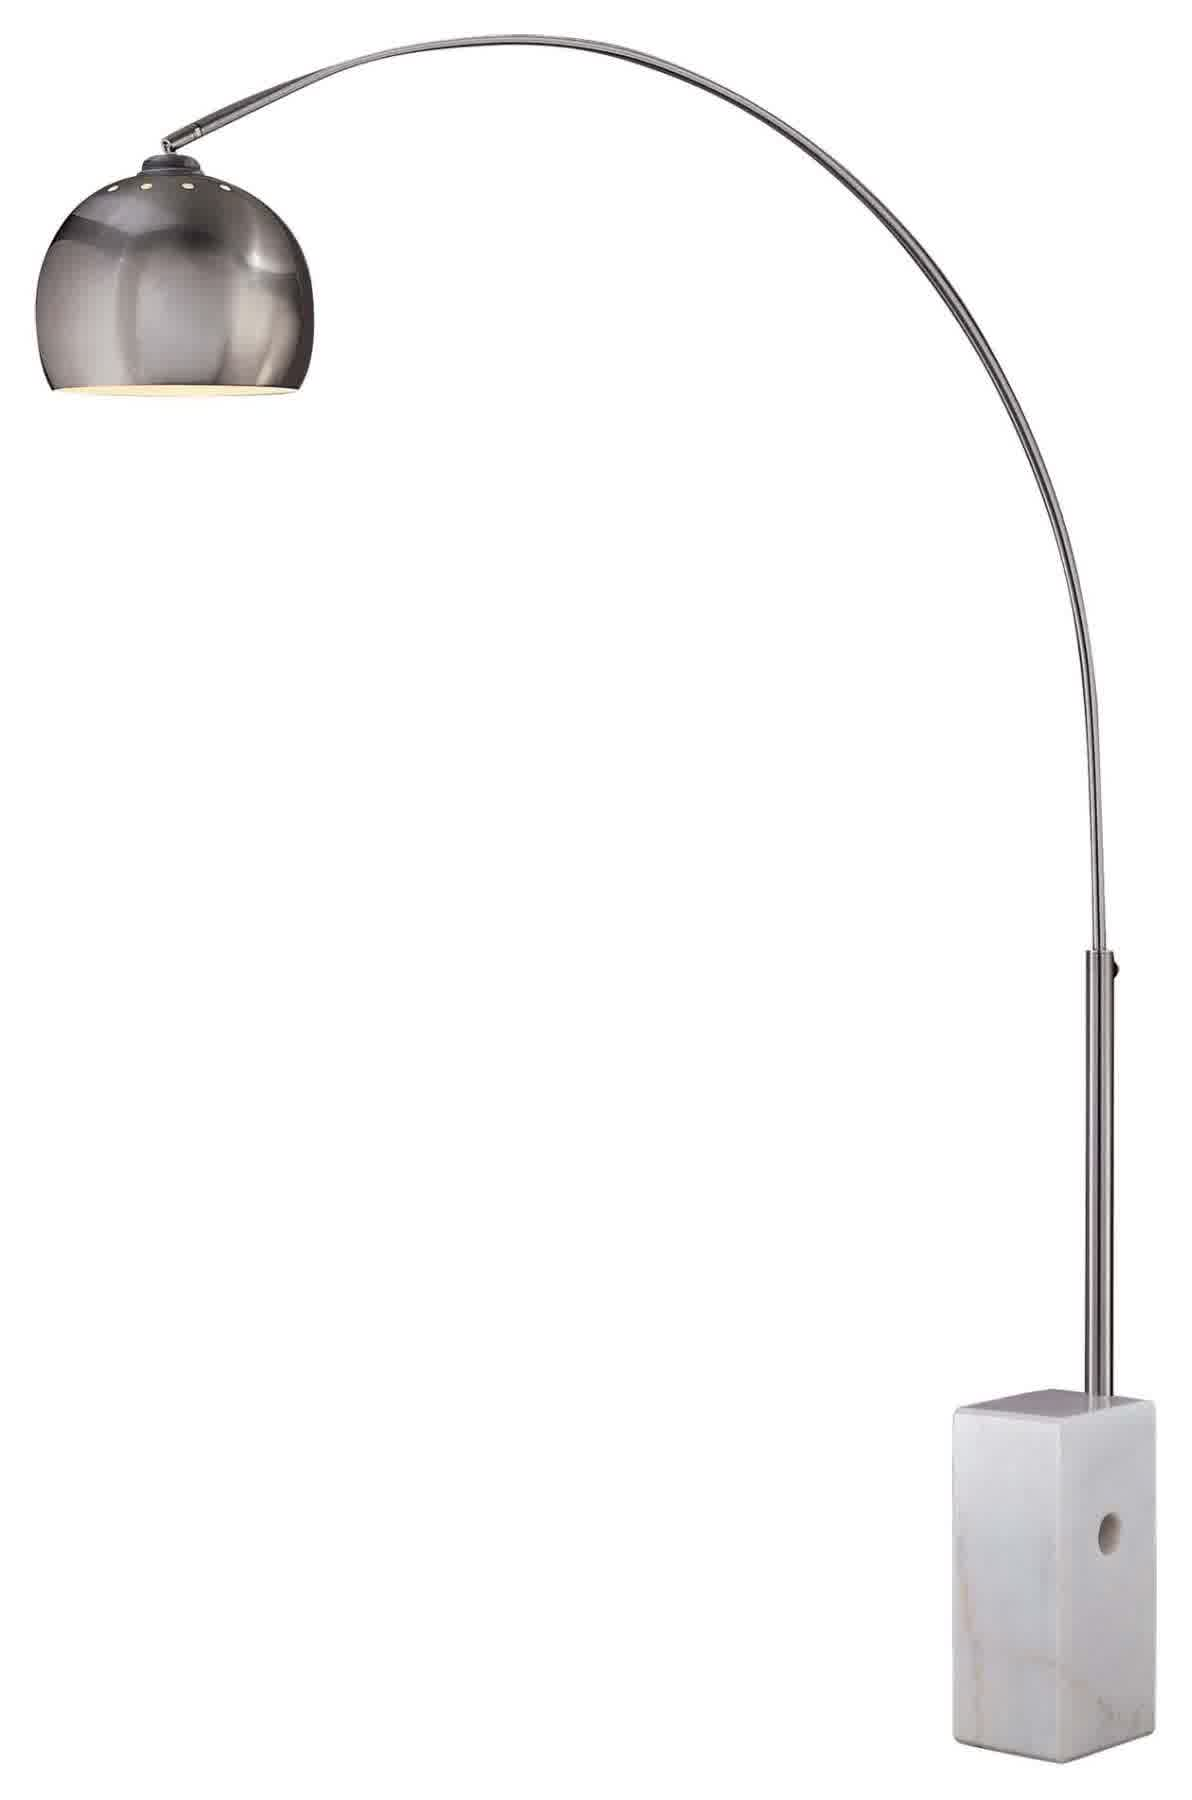 modern stand george kovacs lighting in brushed stainless steel with white marble base finish and metal